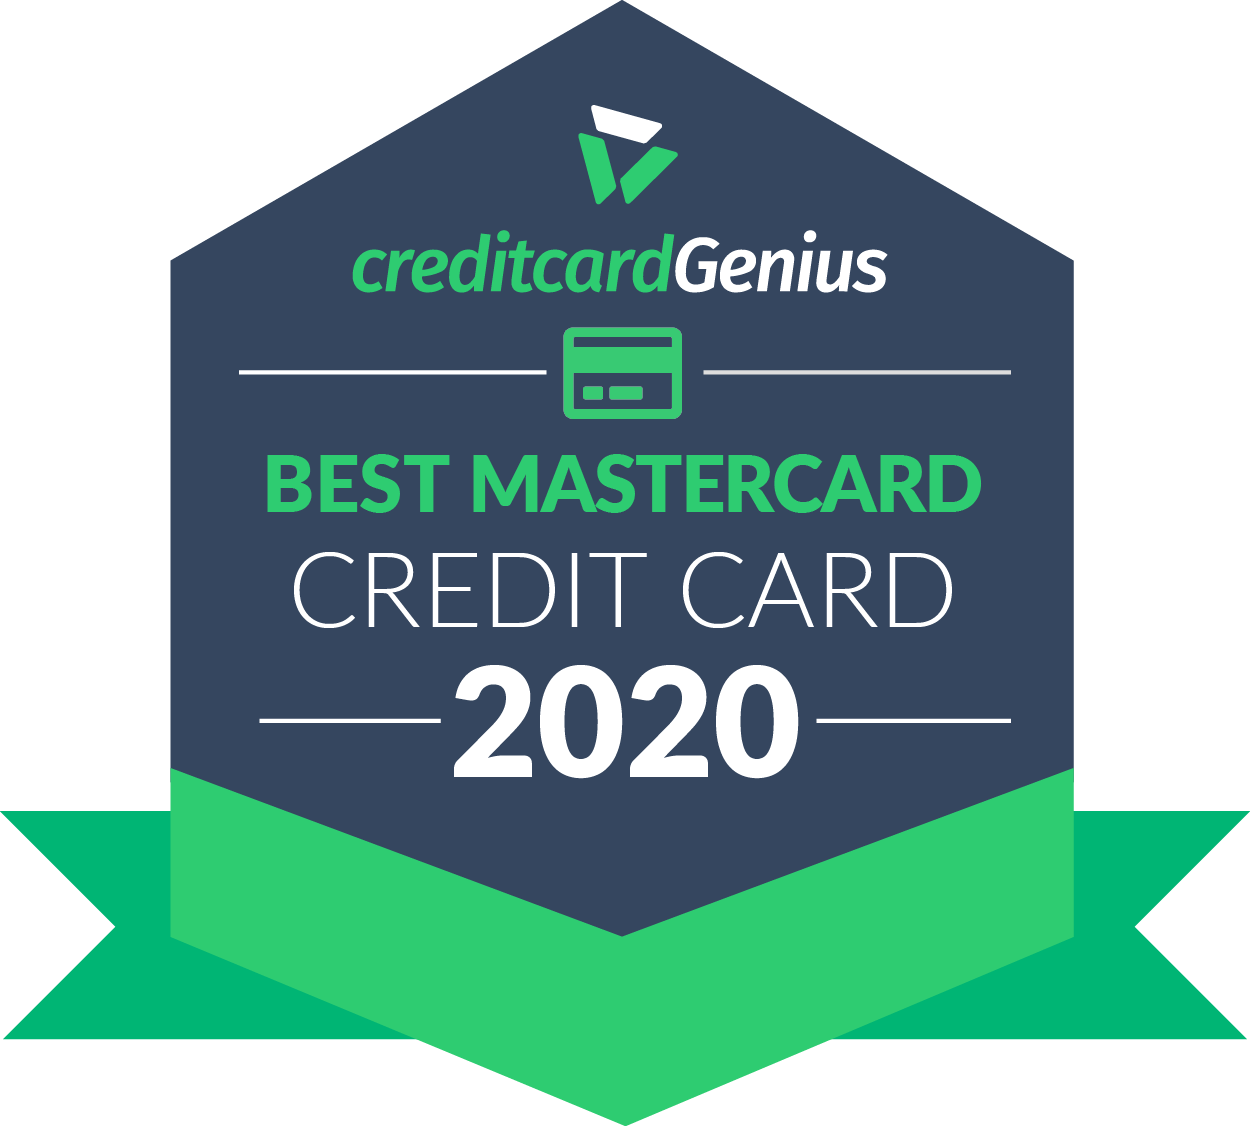 Best Mastercard credit card in Canada for 2020 award seal